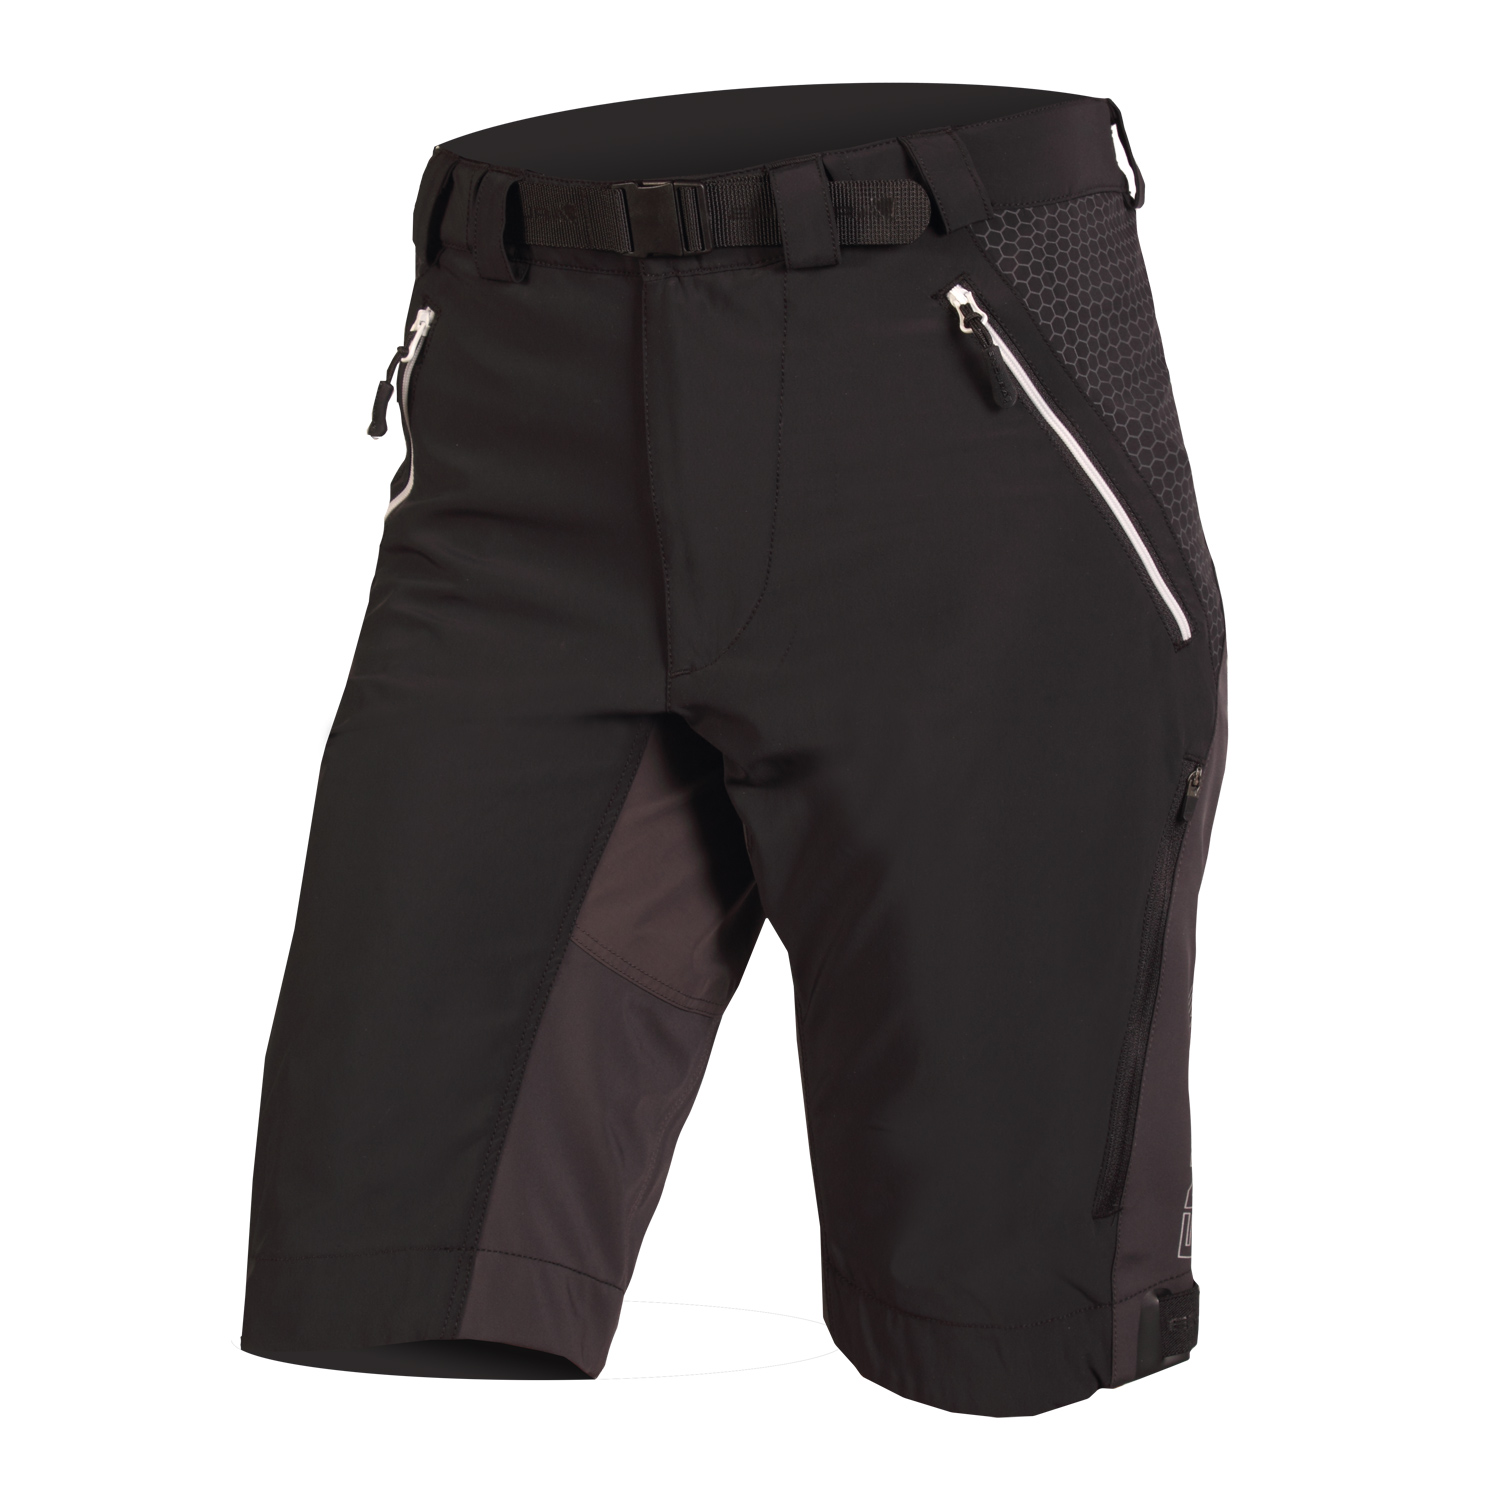 Wms MT500 Spray Baggy Short Black